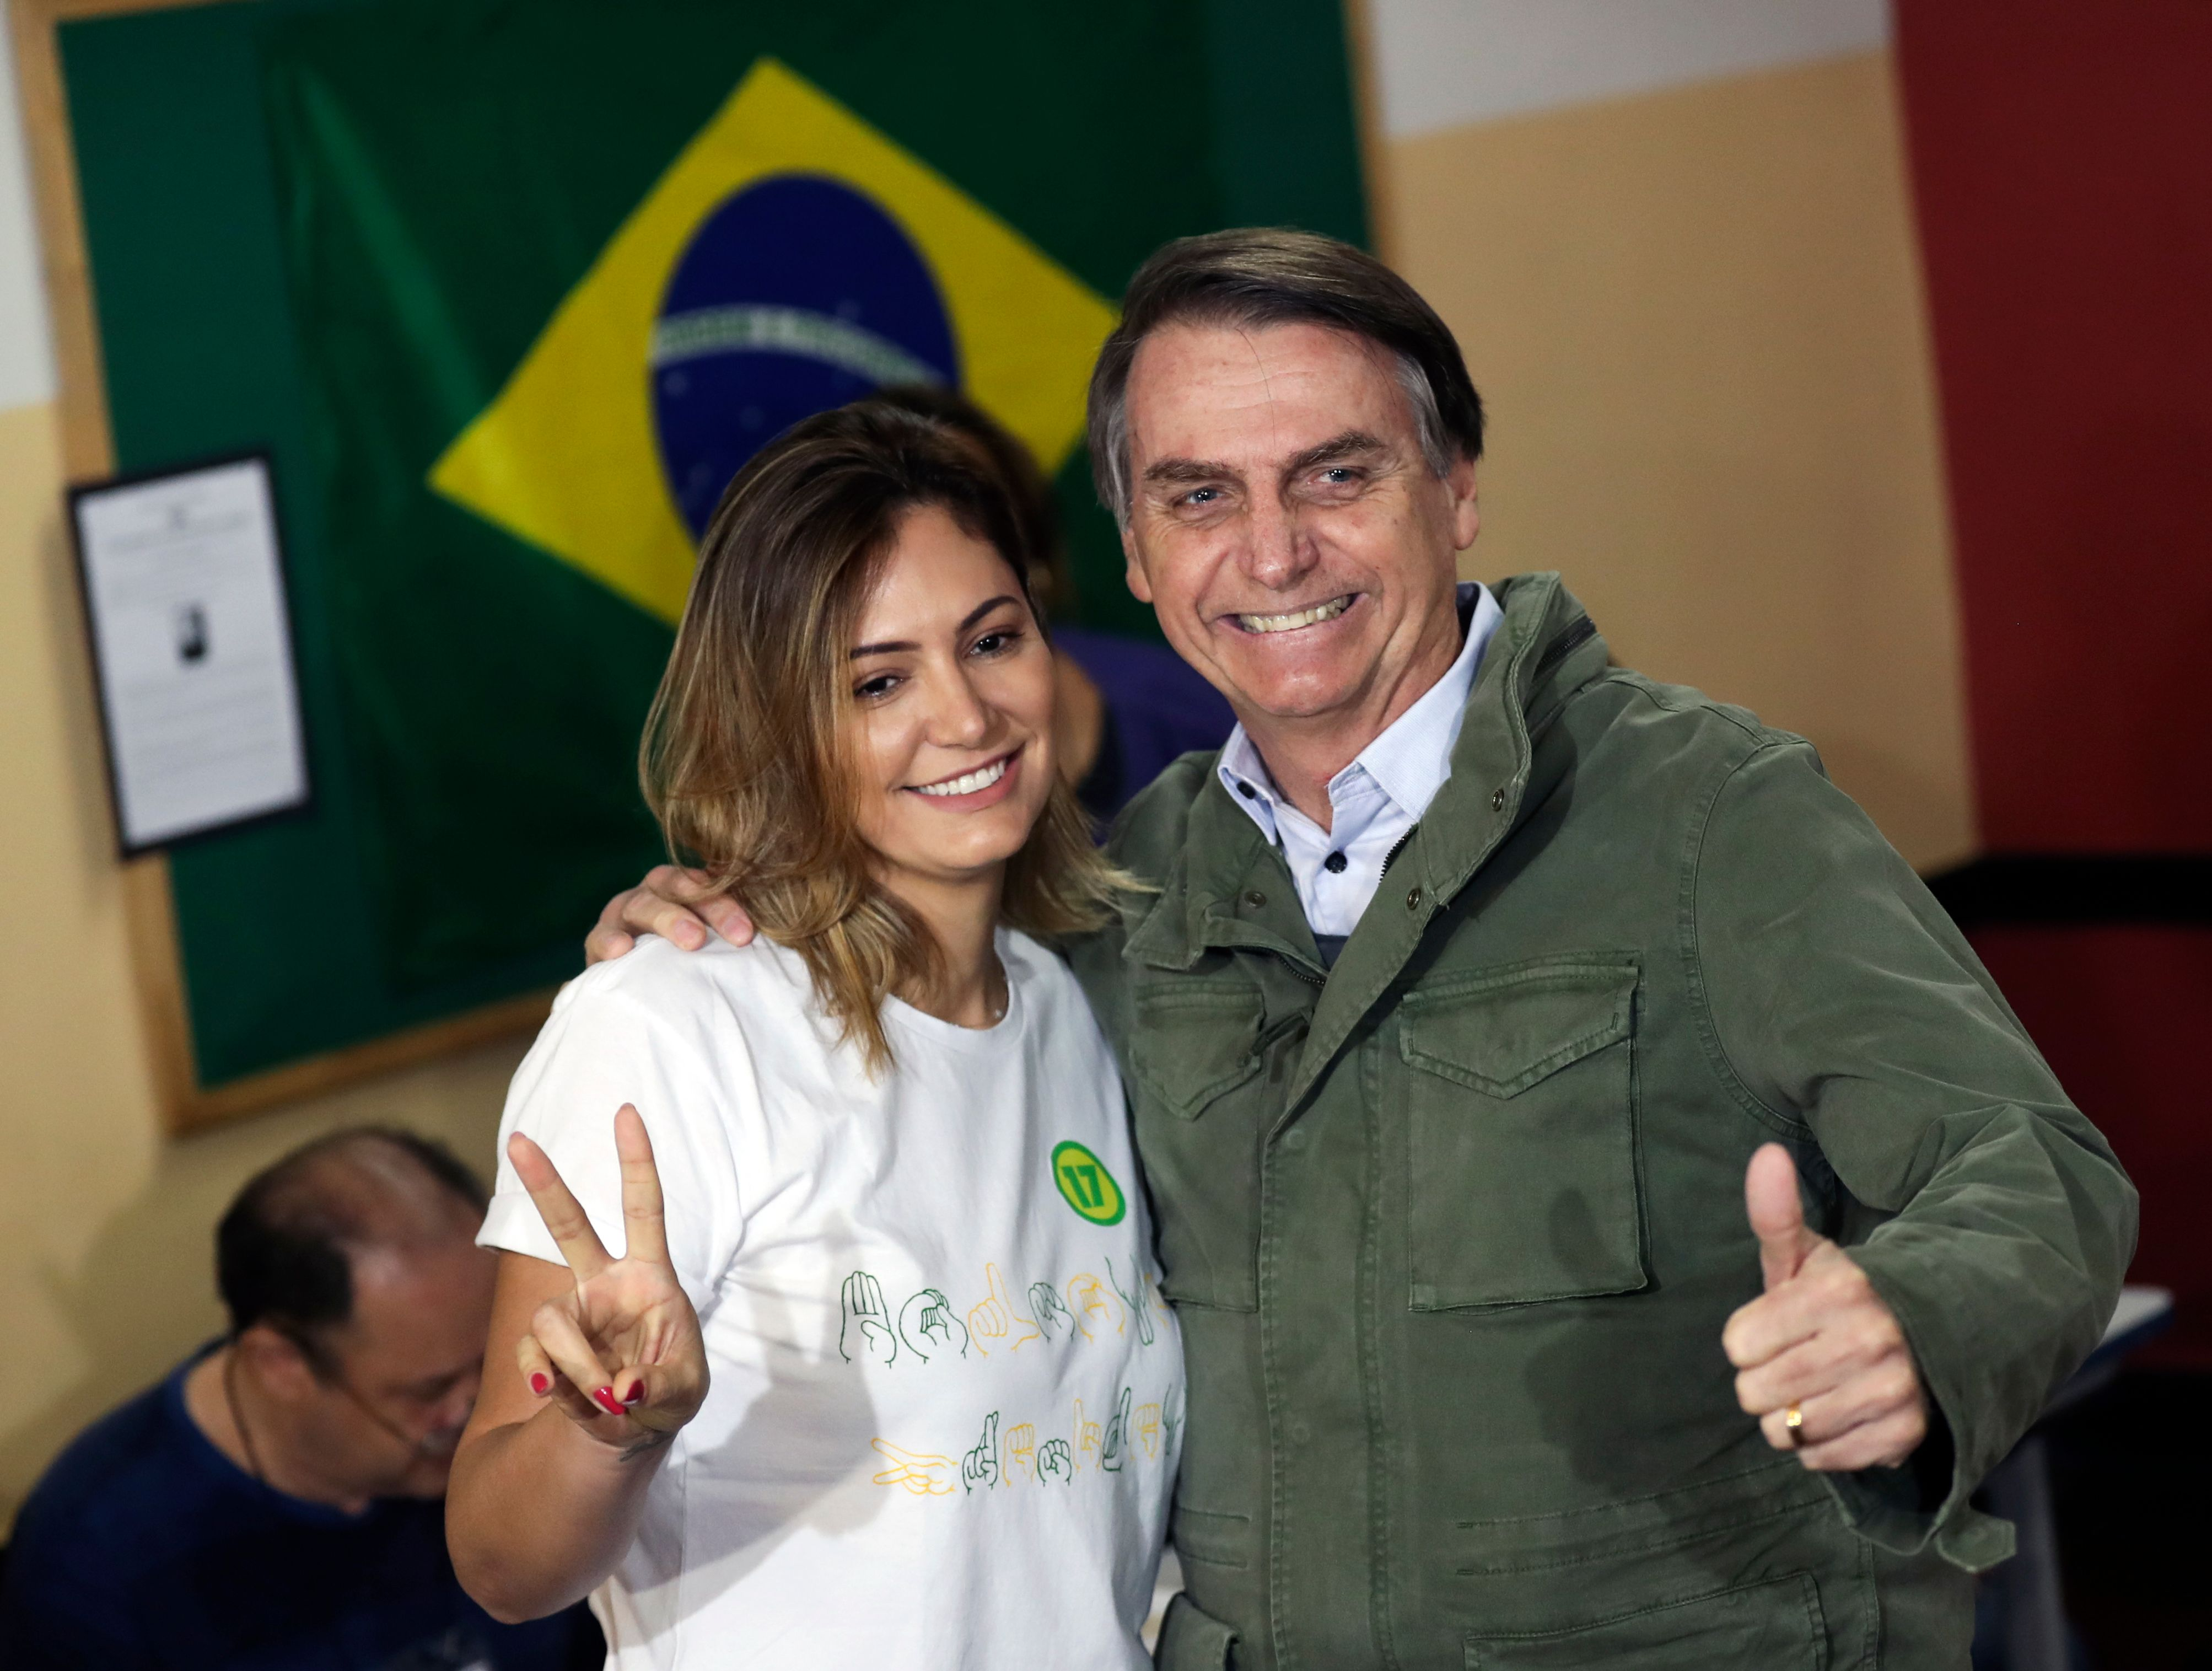 Jair Bolsonaro, far-right lawmaker and presidential candidate of the Social Liberal Party (PSL), and his wife Michelle pose as they arrive to cast their votes, in Rio de Janeiro, Brazil October 28, 2018 (Photo by RICARDO MORAES / POOL / AFP)